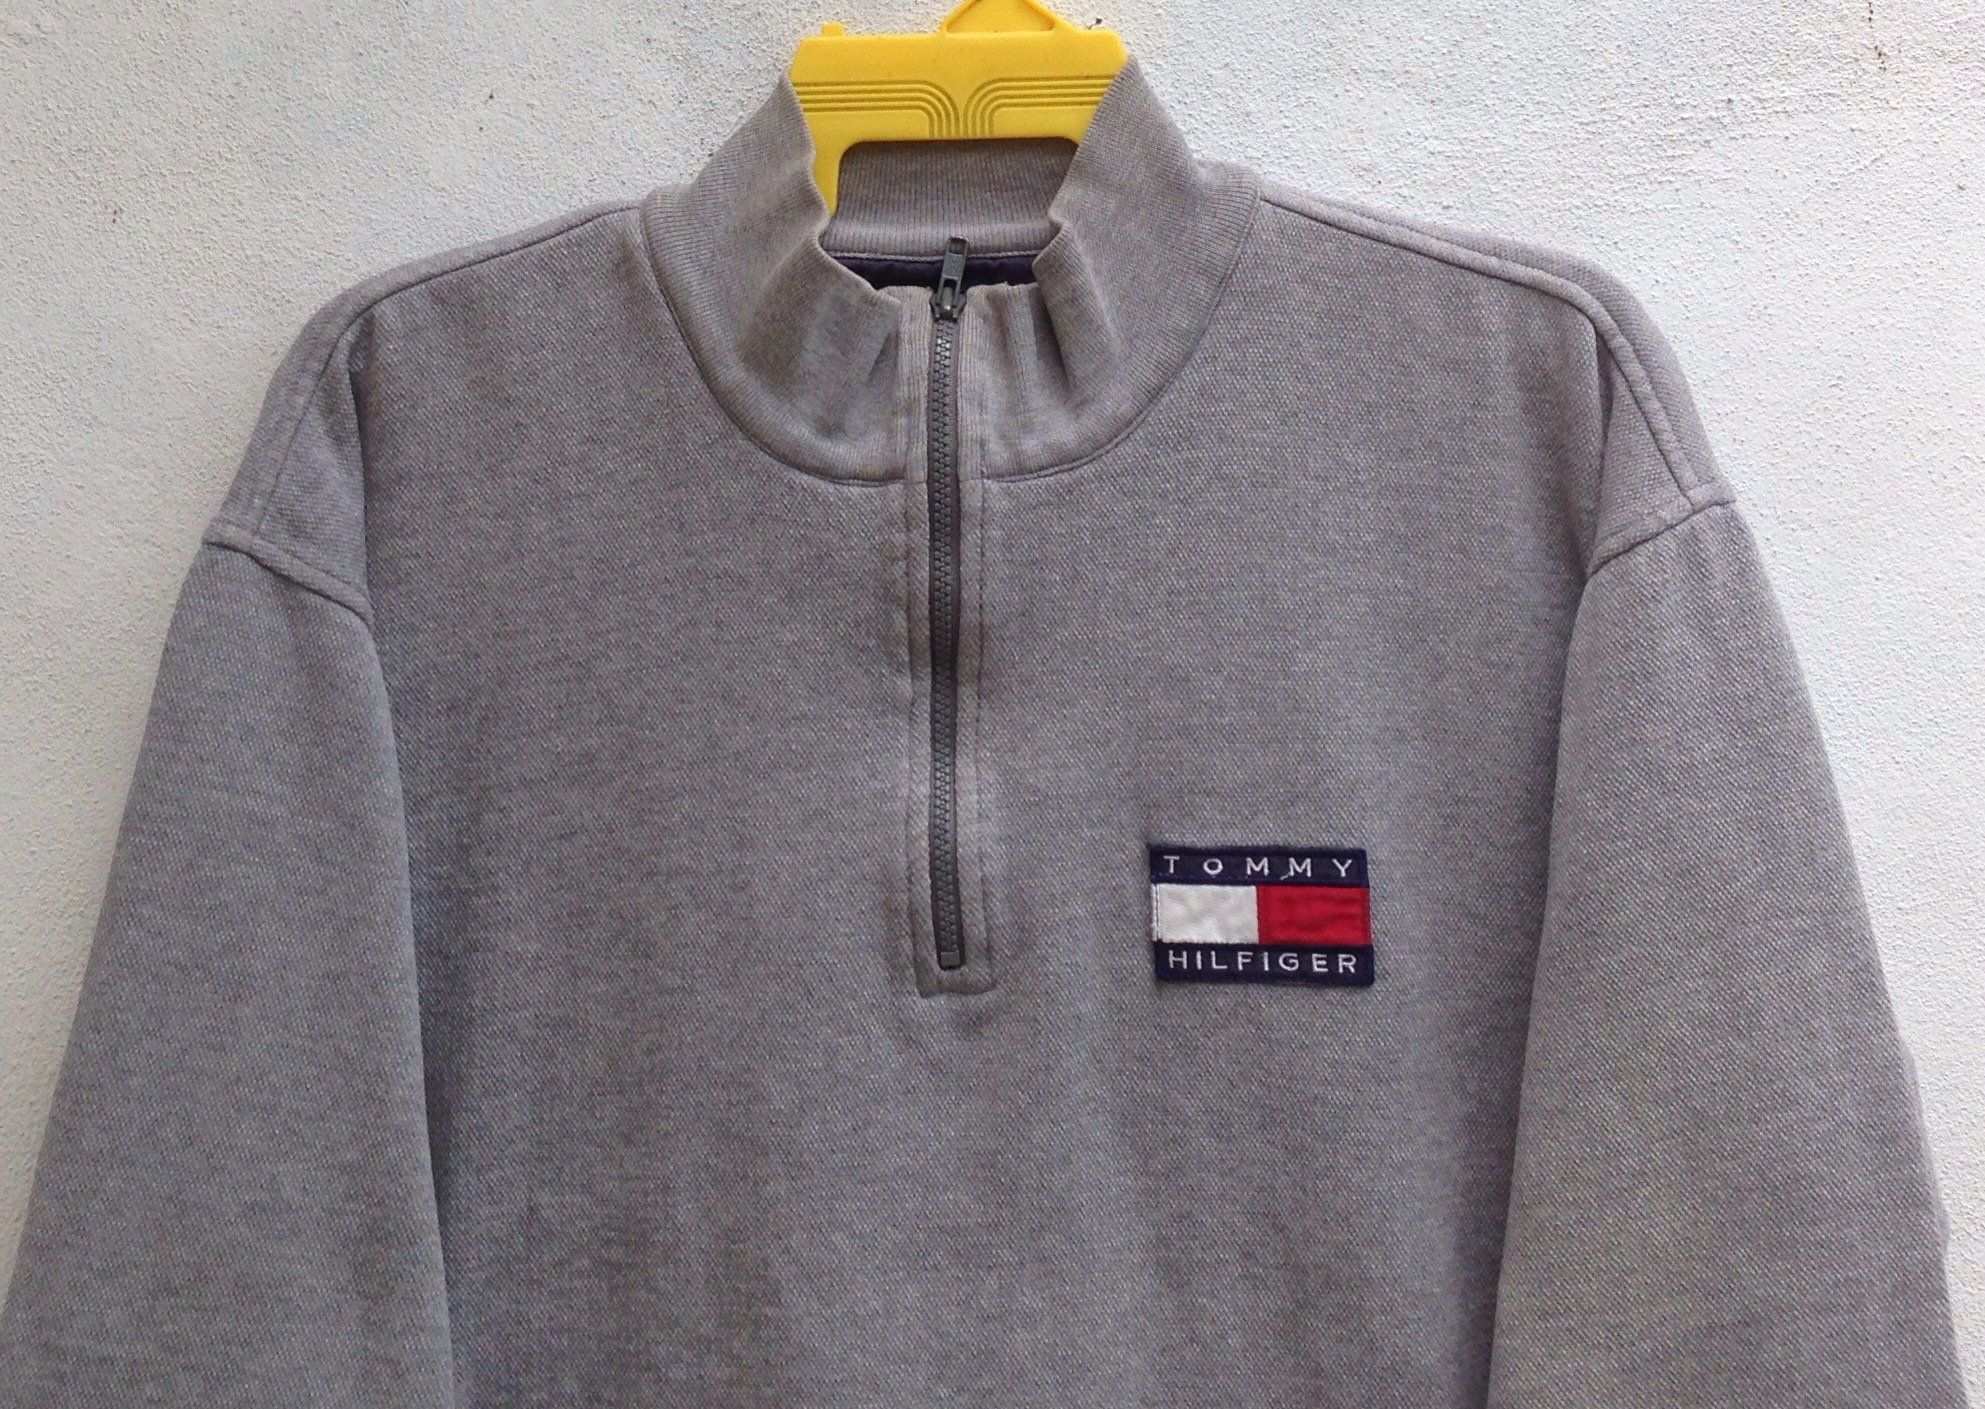 pretty nice 6d64c b10ee Vintage 90s Tommy Hilfiger Sweatshirts Half Zipper Small Logo Patches  Sweater Size Large by TwoNineVintageStore on Etsy